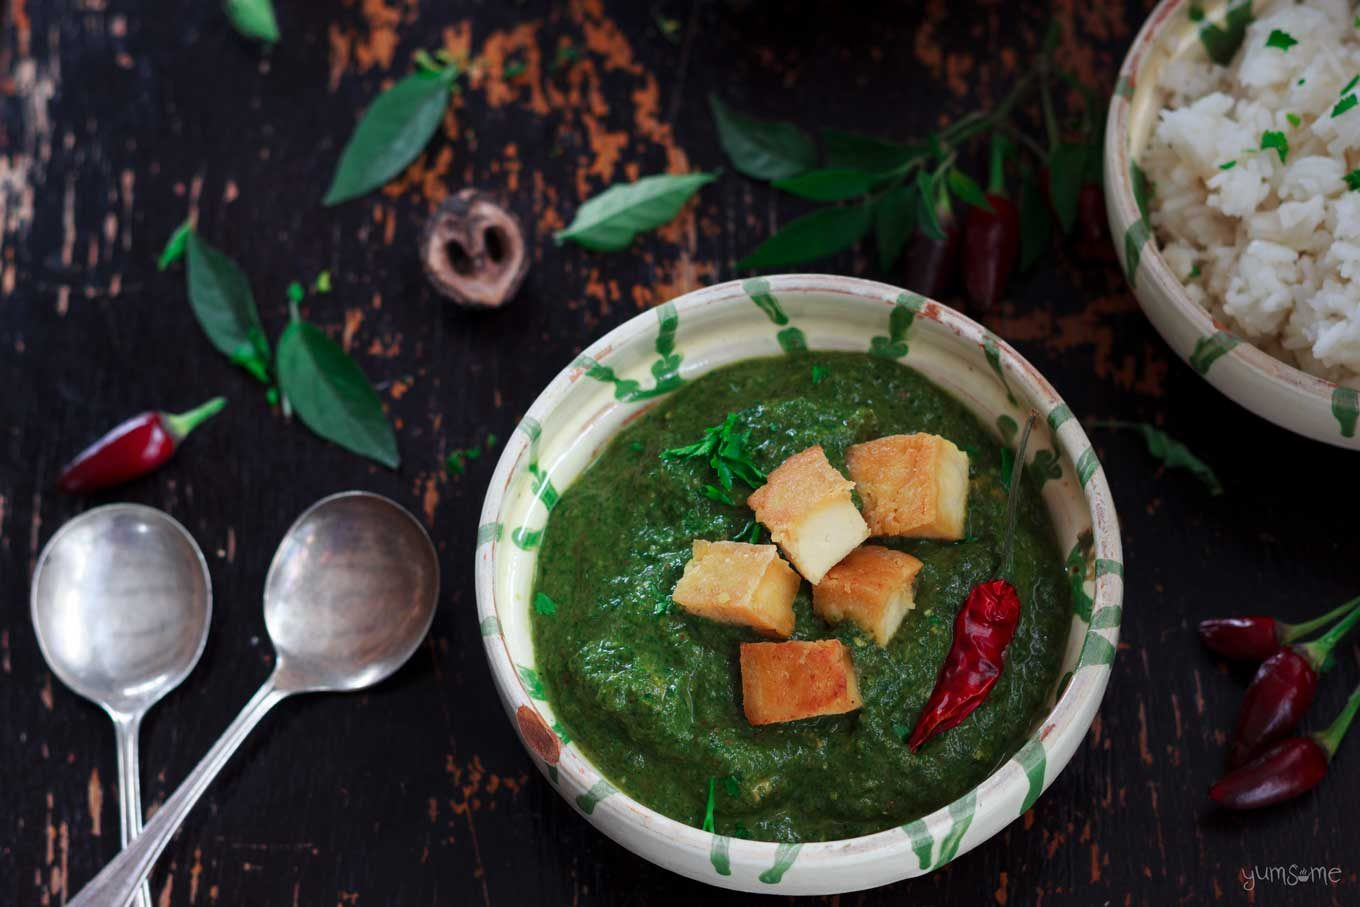 A bowl of vegan palak paneer and two silver spoons on a dark wood table.